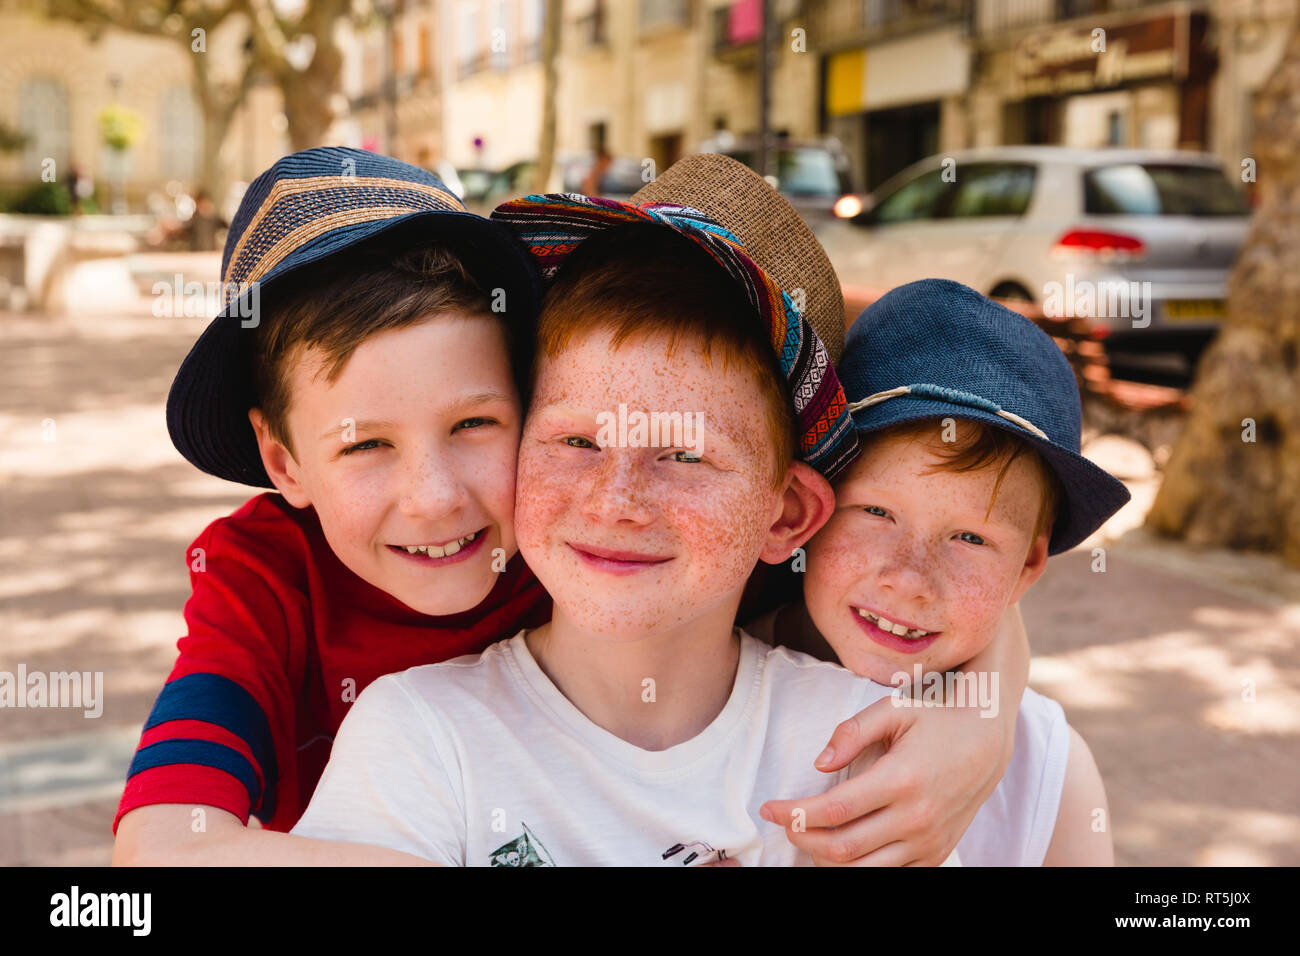 Group picture of three happy boys on holiday Stock Photo